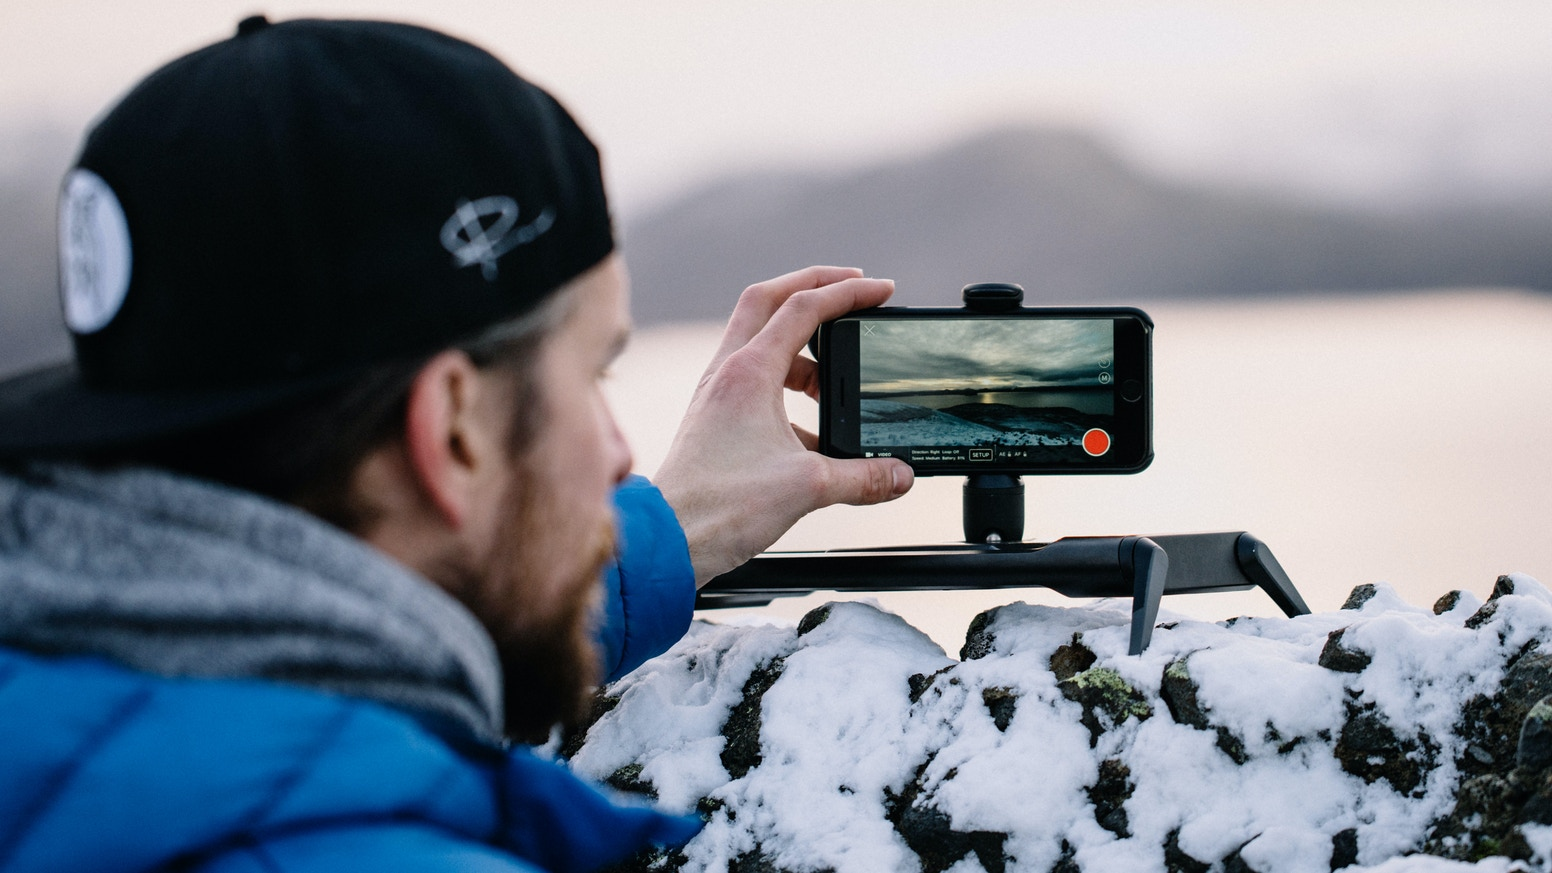 The easiest way to capture cinematic movement with your smartphone and DSLR.